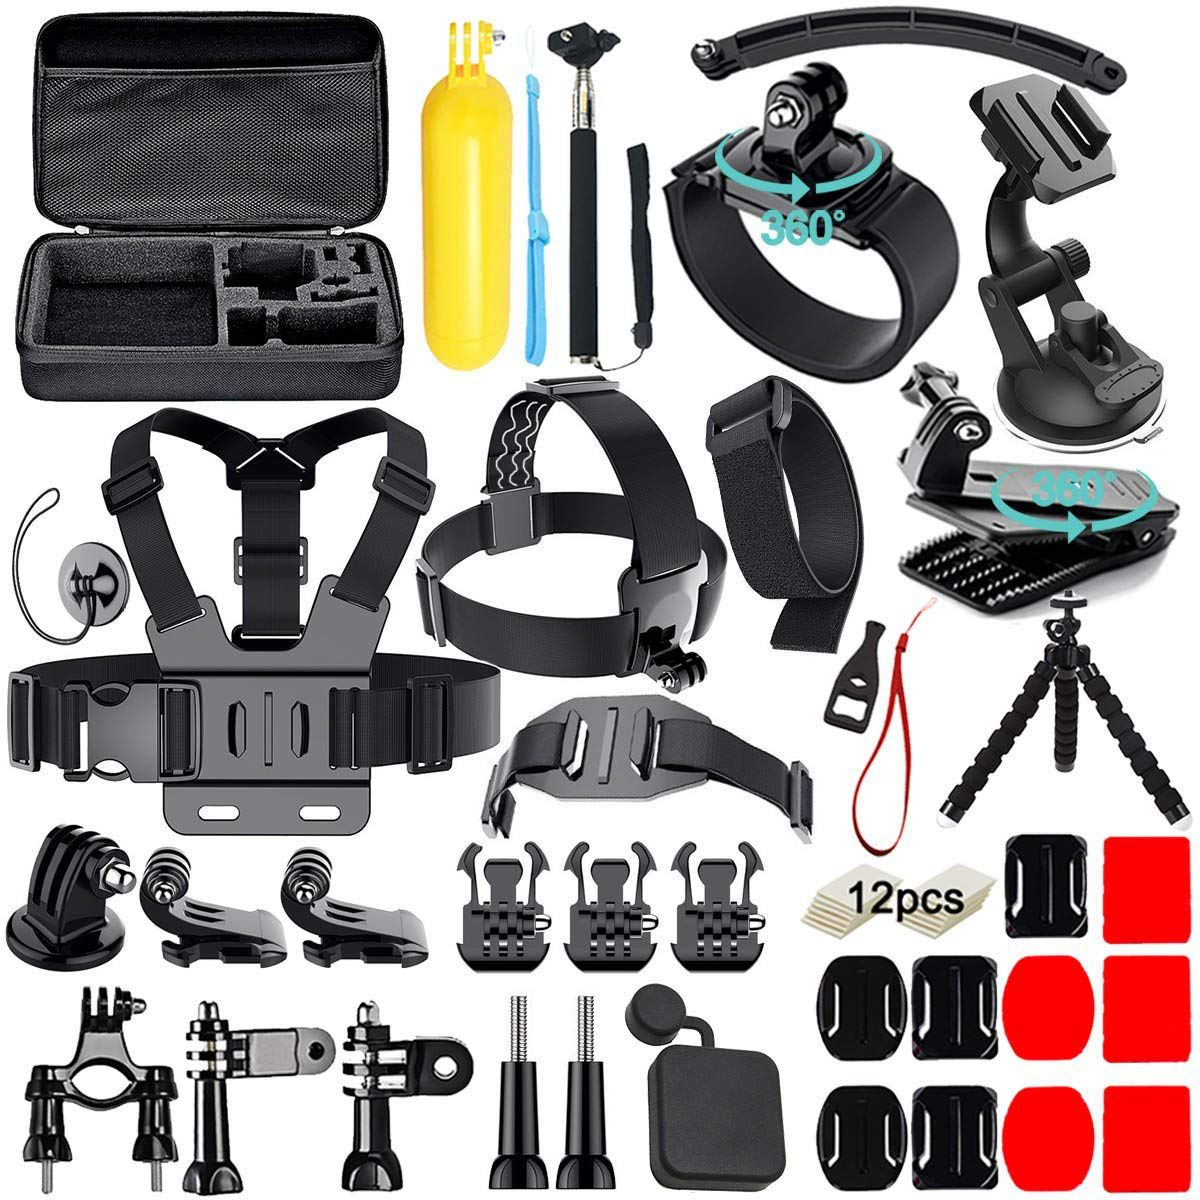 50 in 1 Action Camera Accessories Kit for GoPro Hero 2018 GoPro Hero6 5 4 3 Carrying Case Chest Strap Octopus Tripod in Sports Camcorder Cases from Consumer Electronics